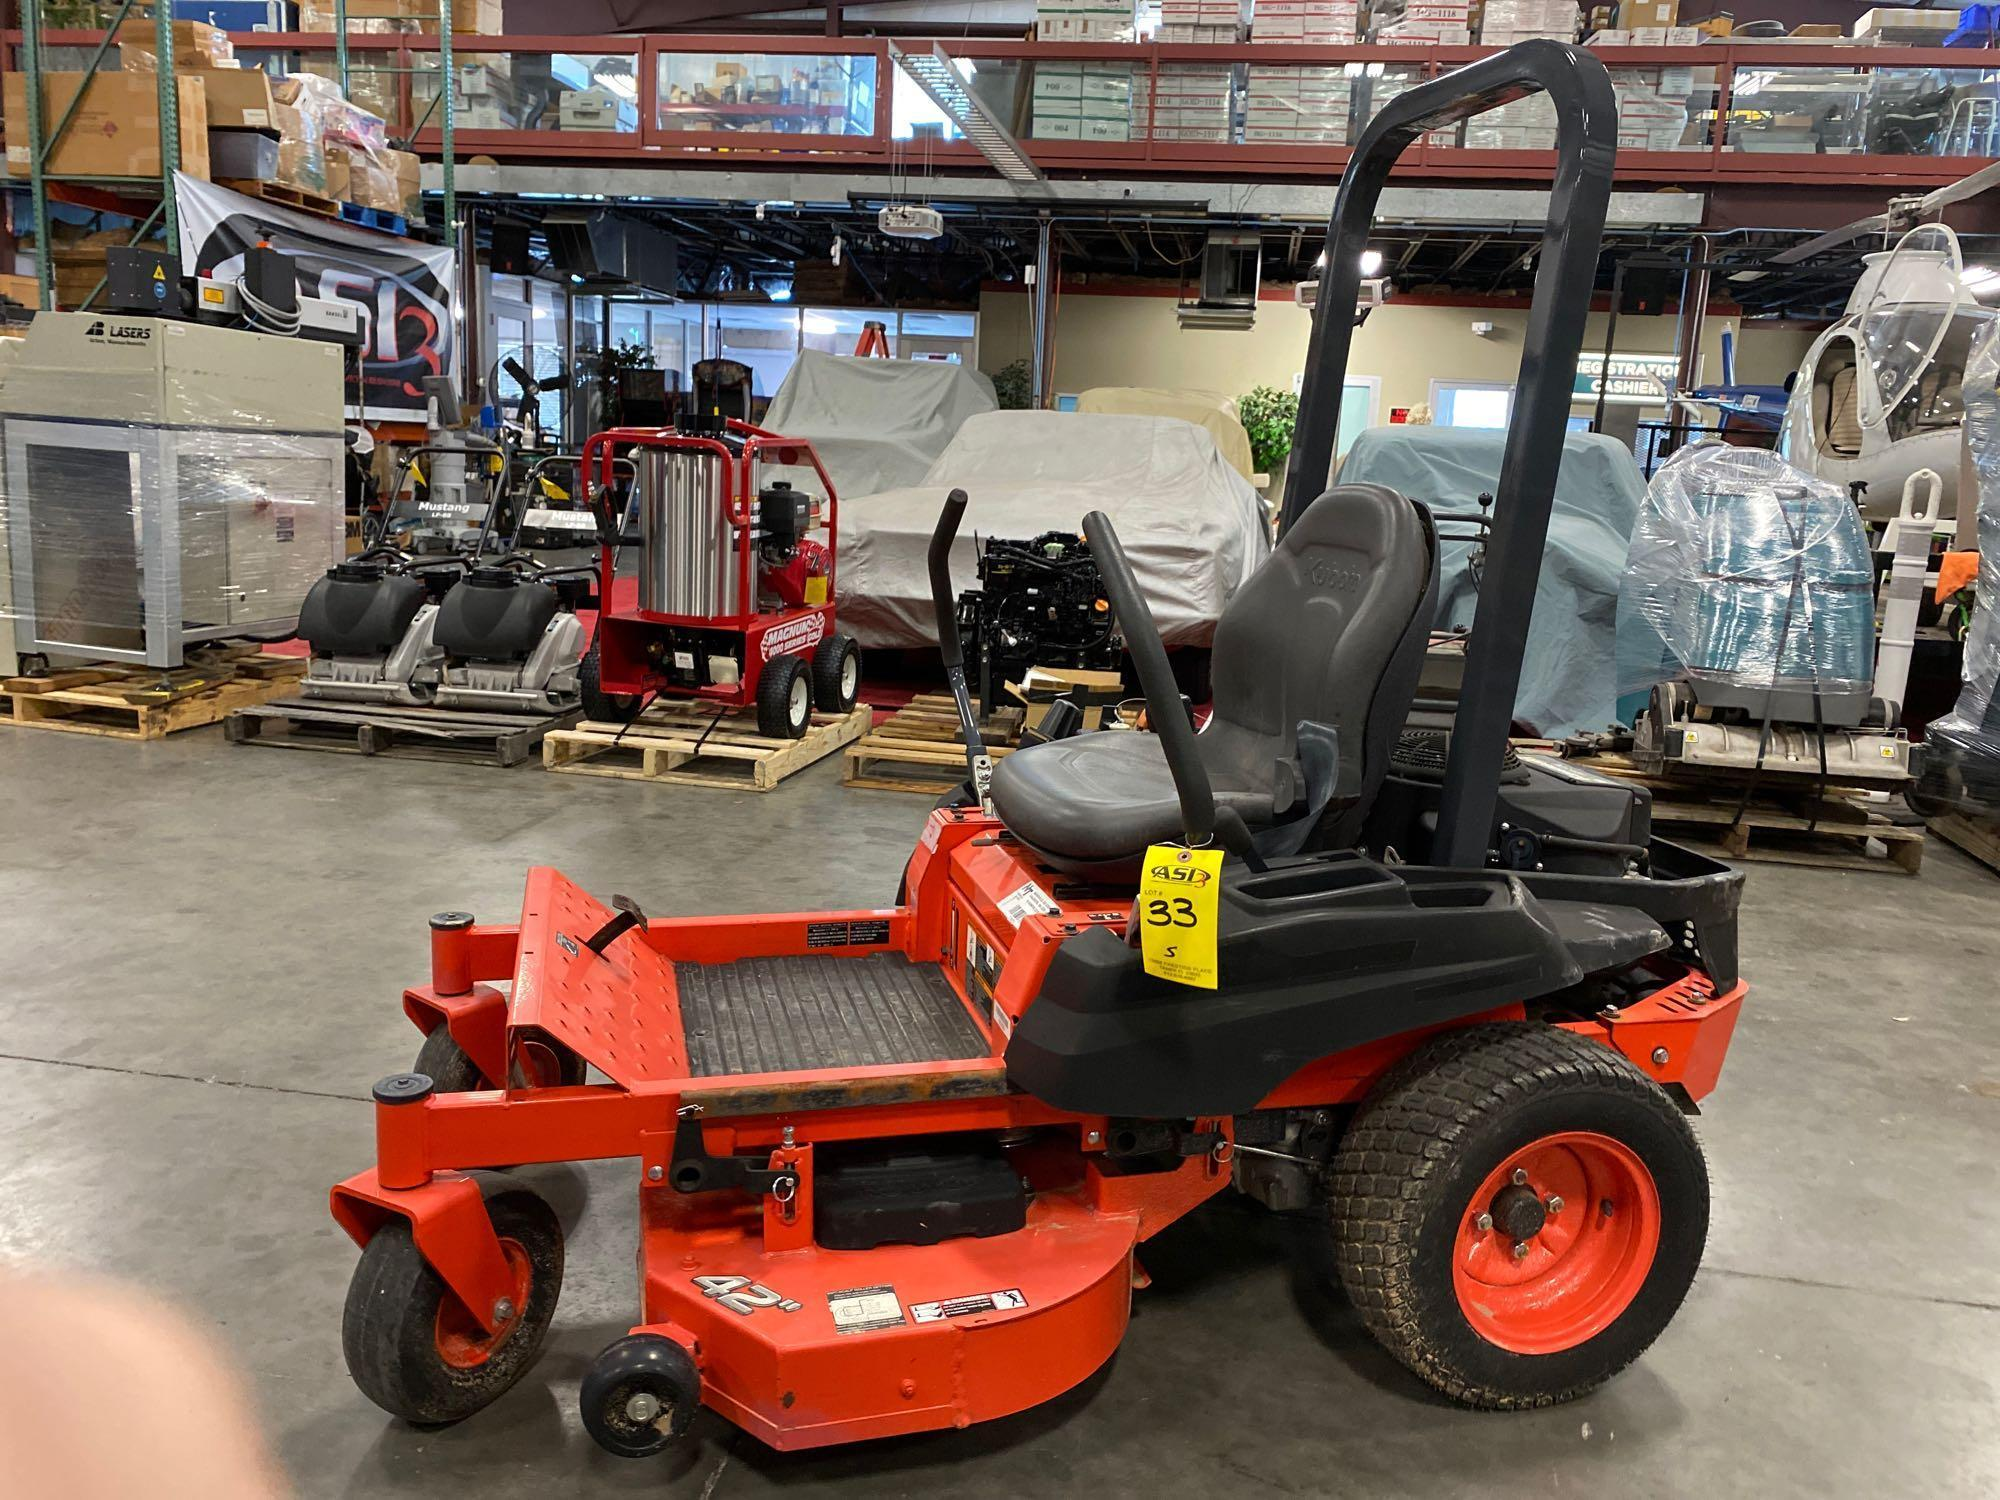 """2016 KUBOTA Z122RKW 42"""" RIDE ON MOWER, 3.9 HOURS SHOWING, RUNS AND OPERATES - Image 6 of 9"""